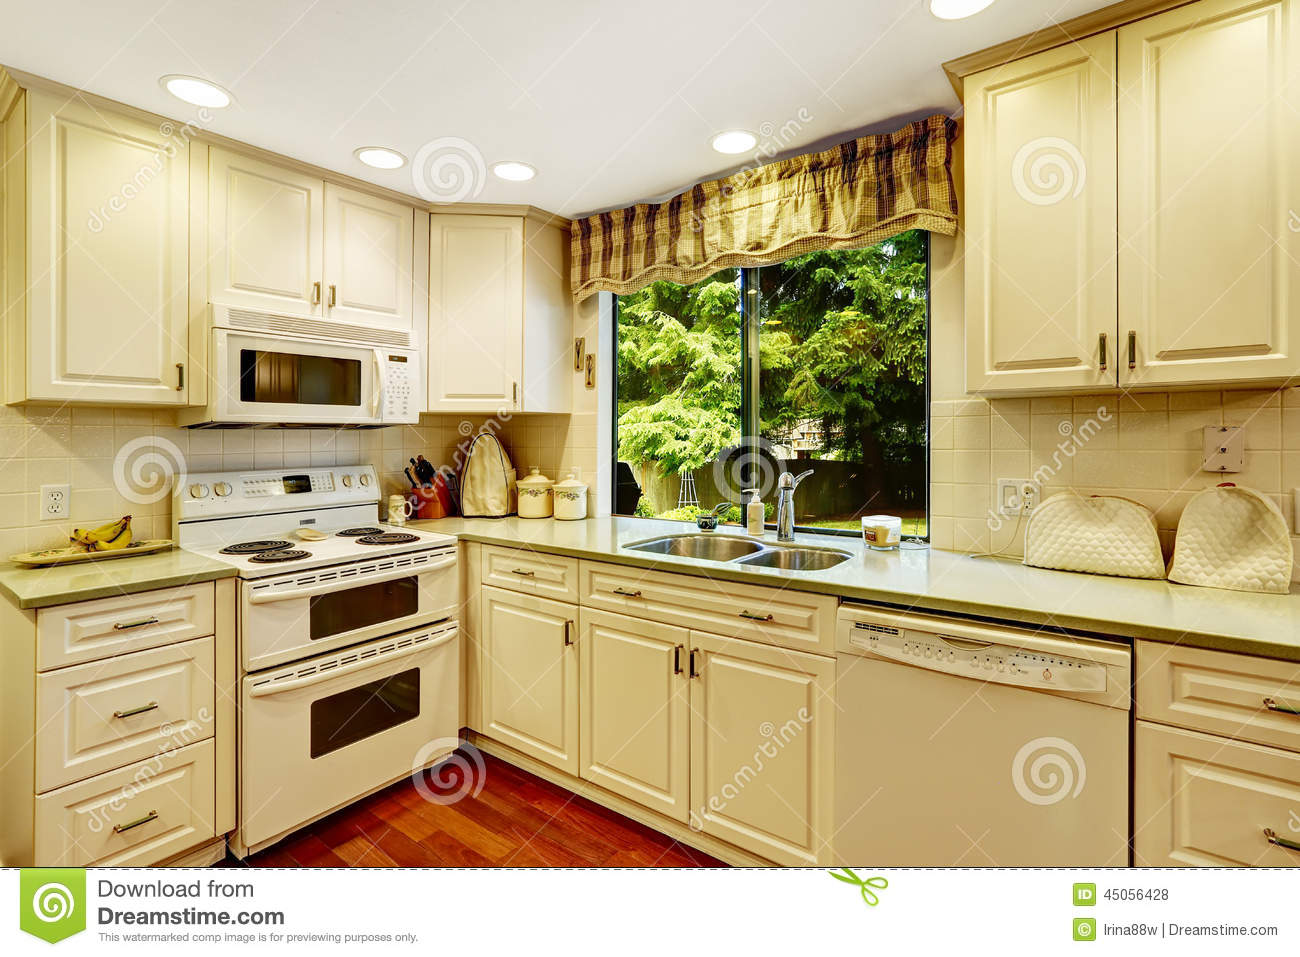 Simple Kitchen Interior In Old House Stock Photo Image Of Room Shiny 45056428